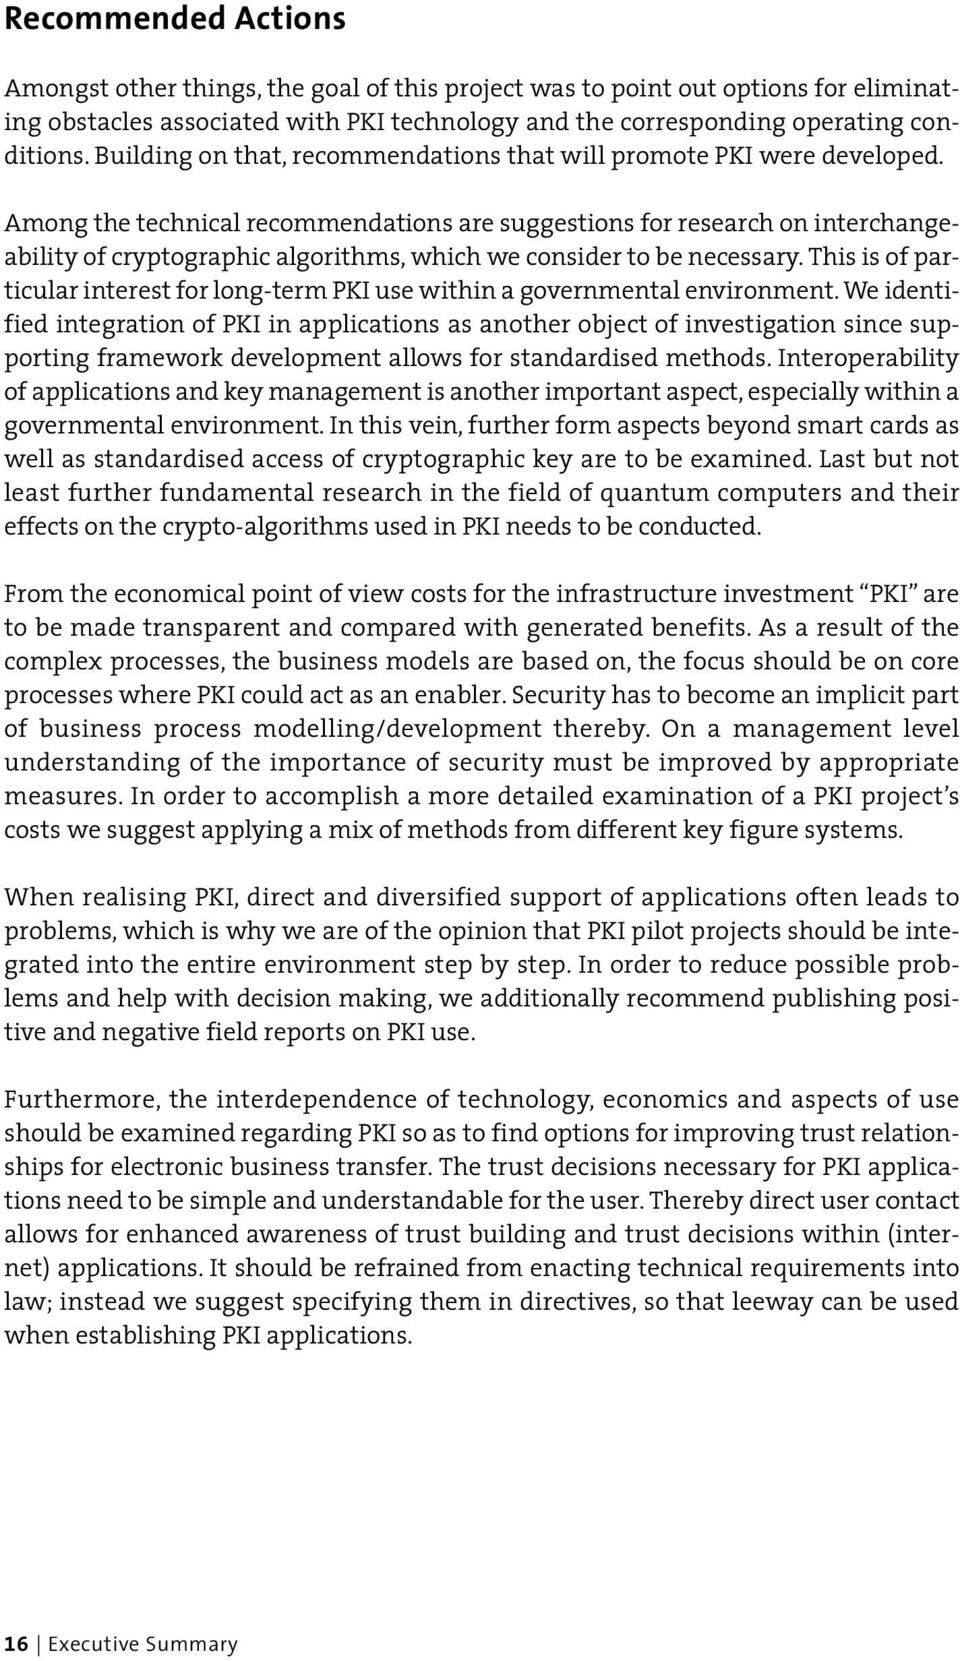 Among the technical recommendations are suggestions for research on interchangeability of cryptographic algorithms, which we consider to be necessary.